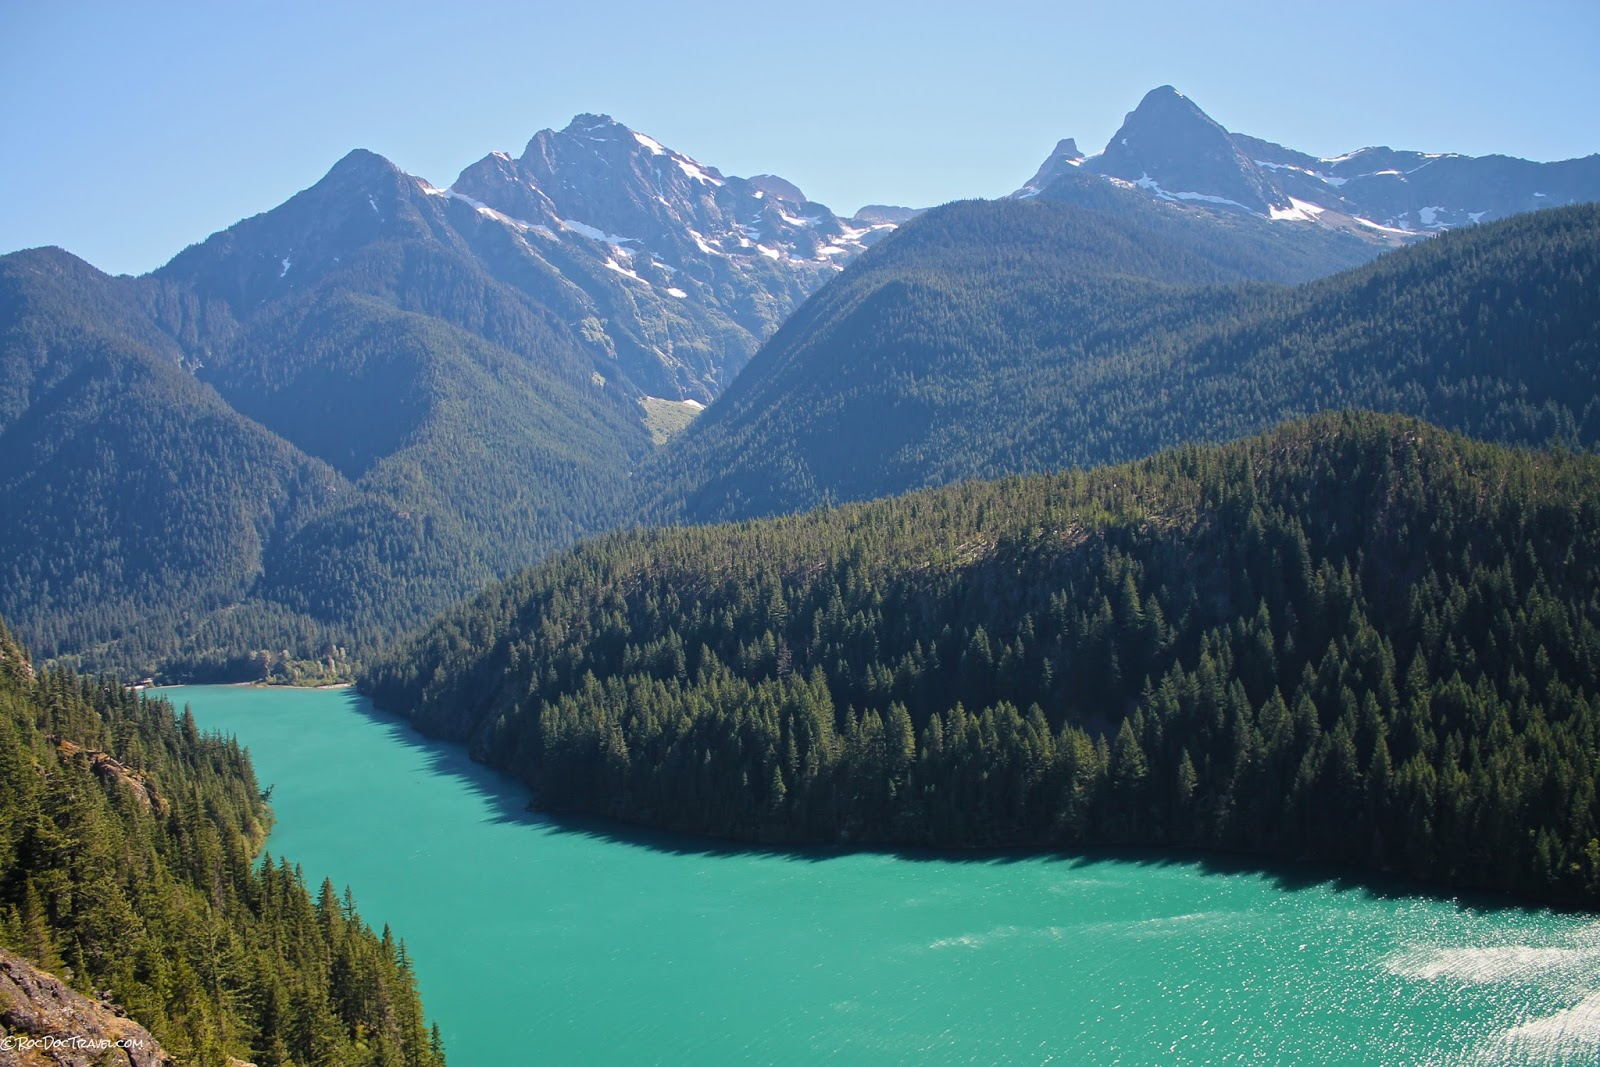 north Cascades National Park Oso landslide Mount Baker volcano glacier Washington copyright rocdoctravel.com